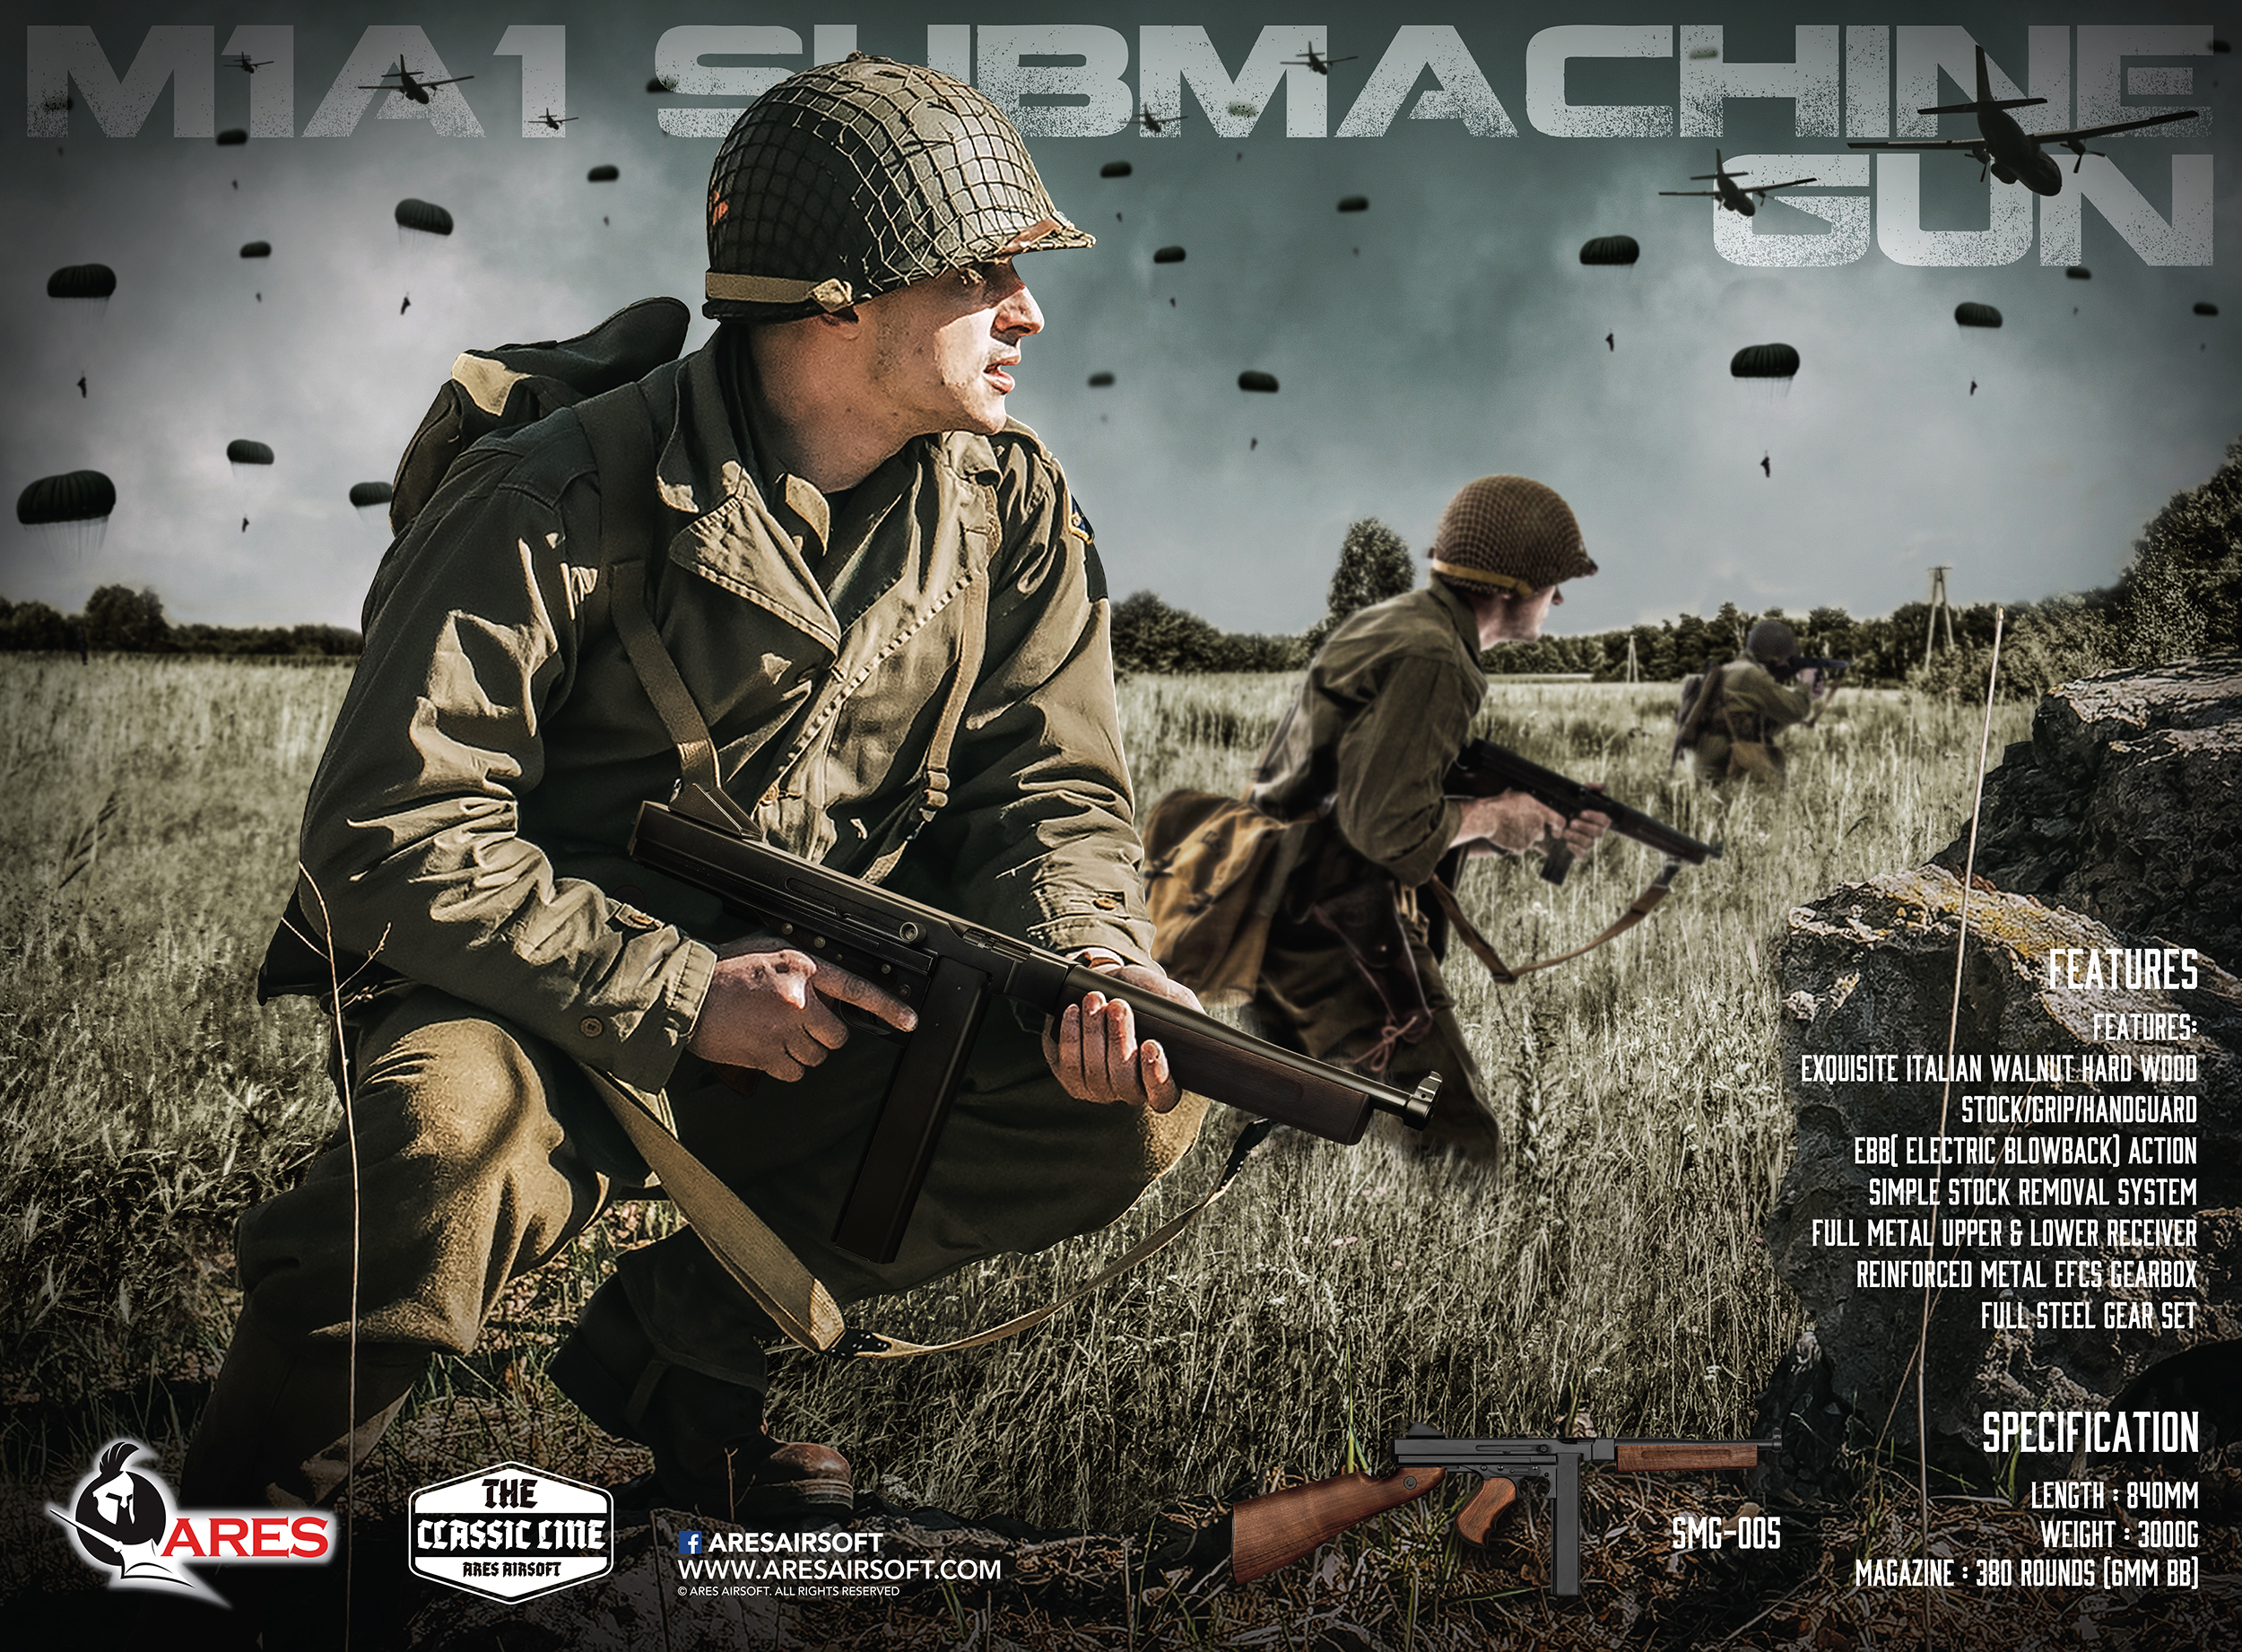 M1A1 Submachine Gun Poster